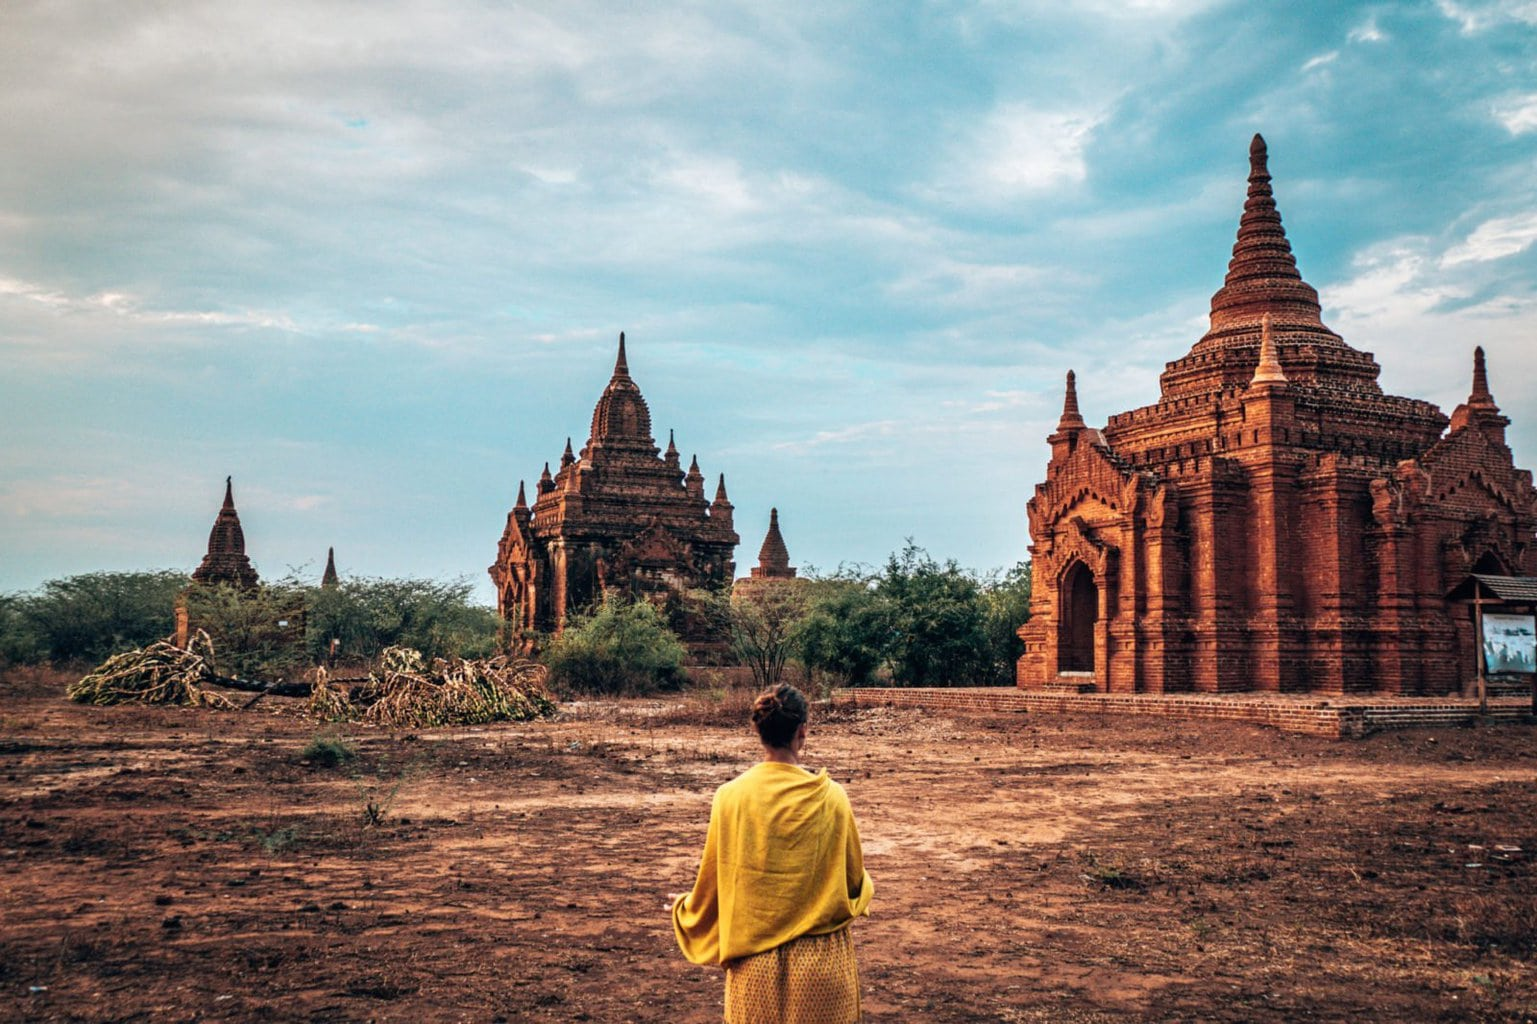 Lee at temples in Bagan